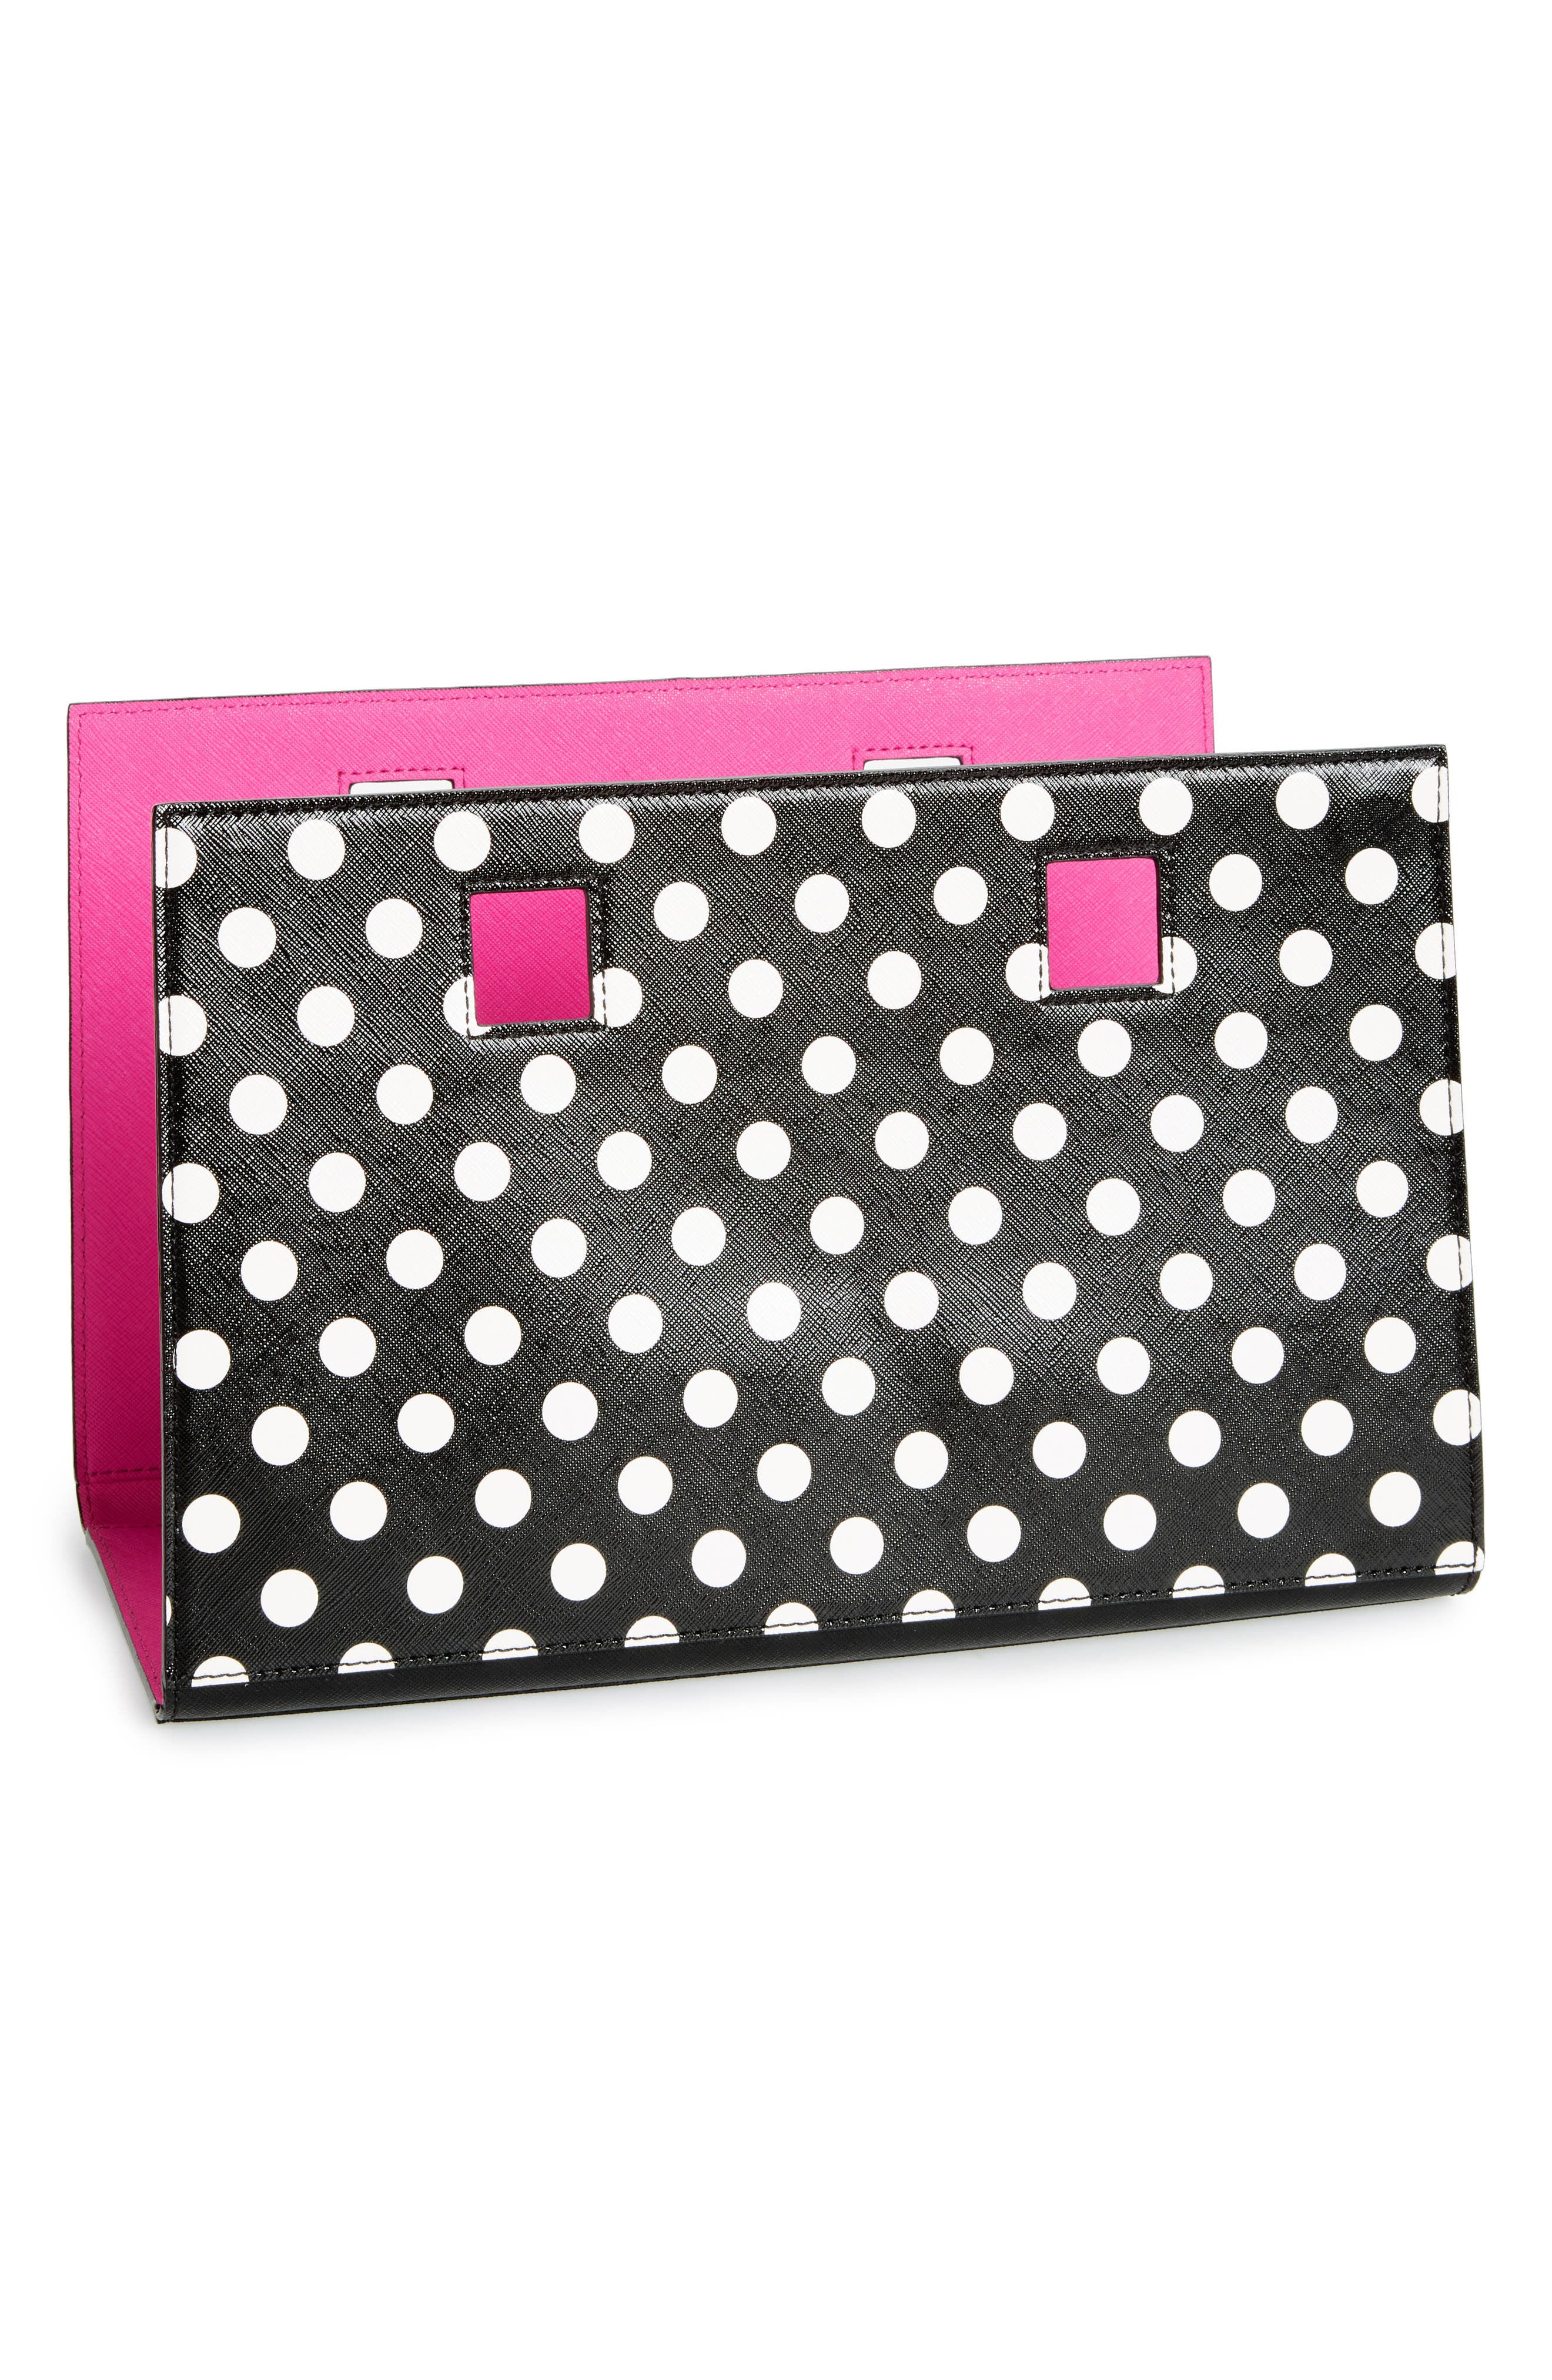 make it mine reversible polka dot/solid leather snap-on accent flap,                         Main,                         color, 010